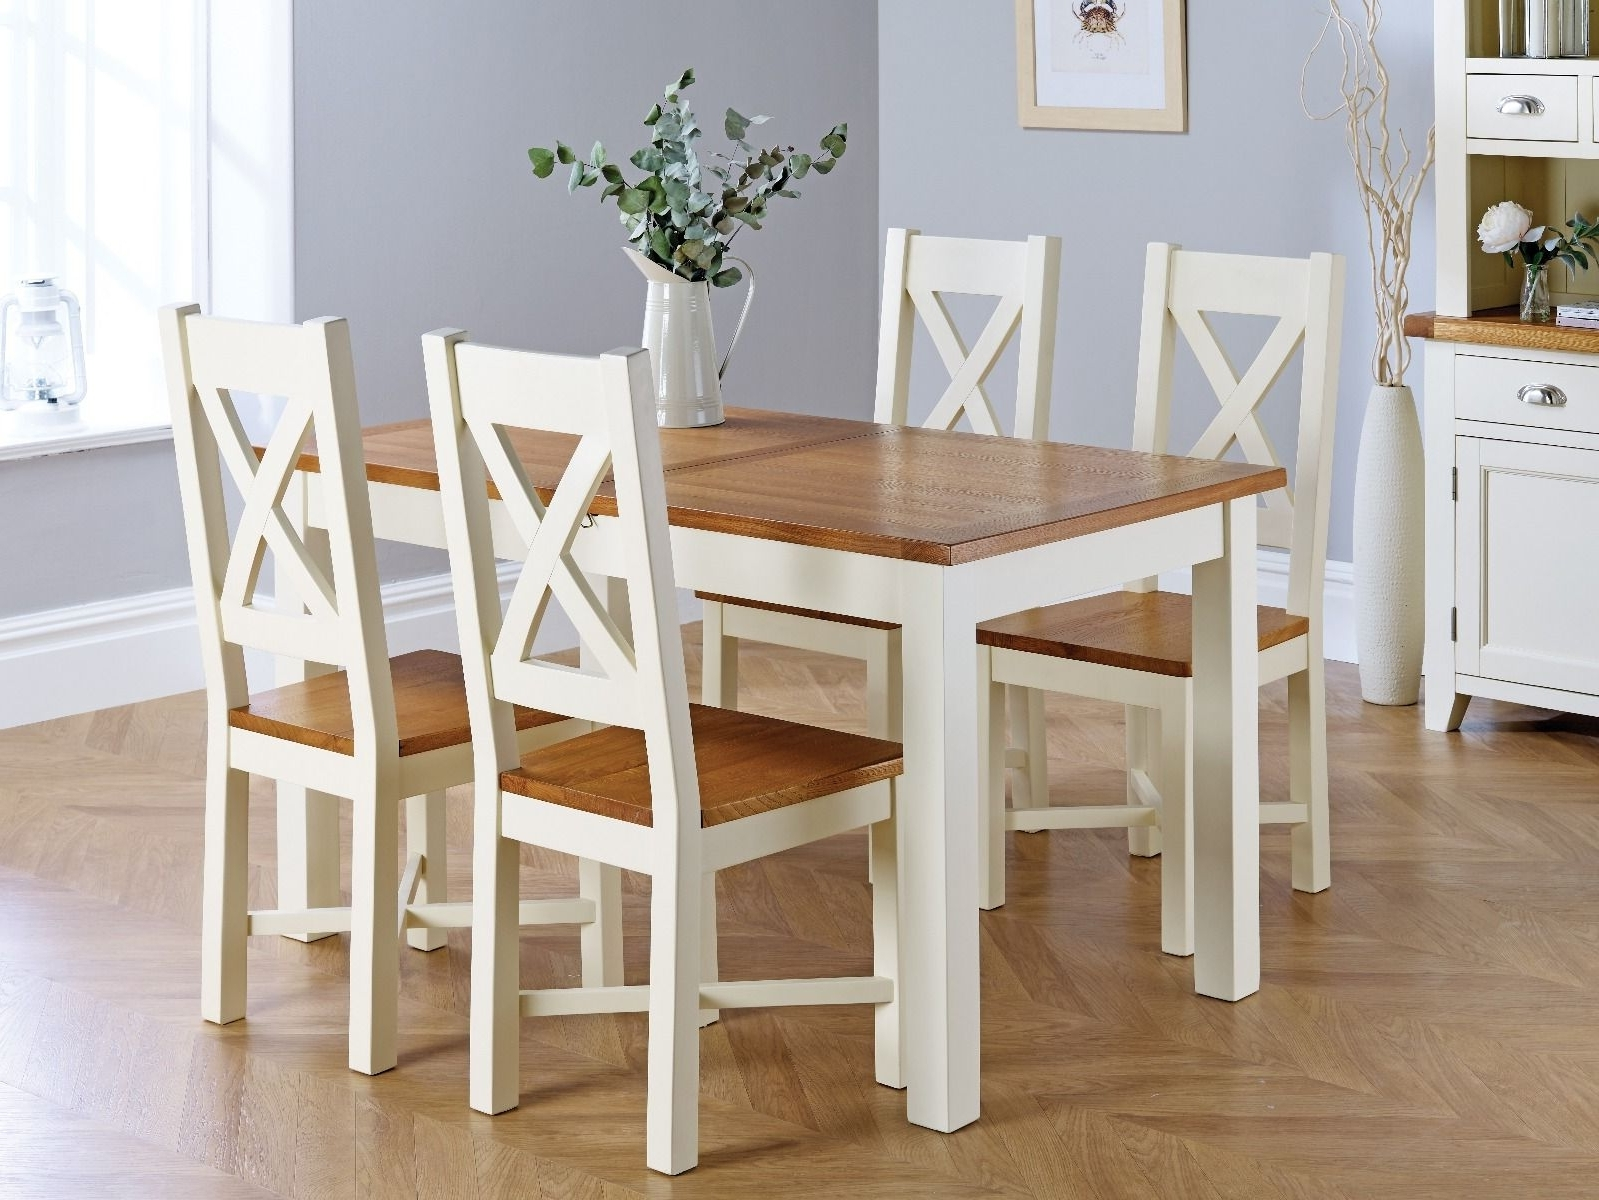 Country Oak 180Cm Cream Painted Extending Dining Table & 4 Grasmere With Well Known Cream And Wood Dining Tables (View 17 of 25)